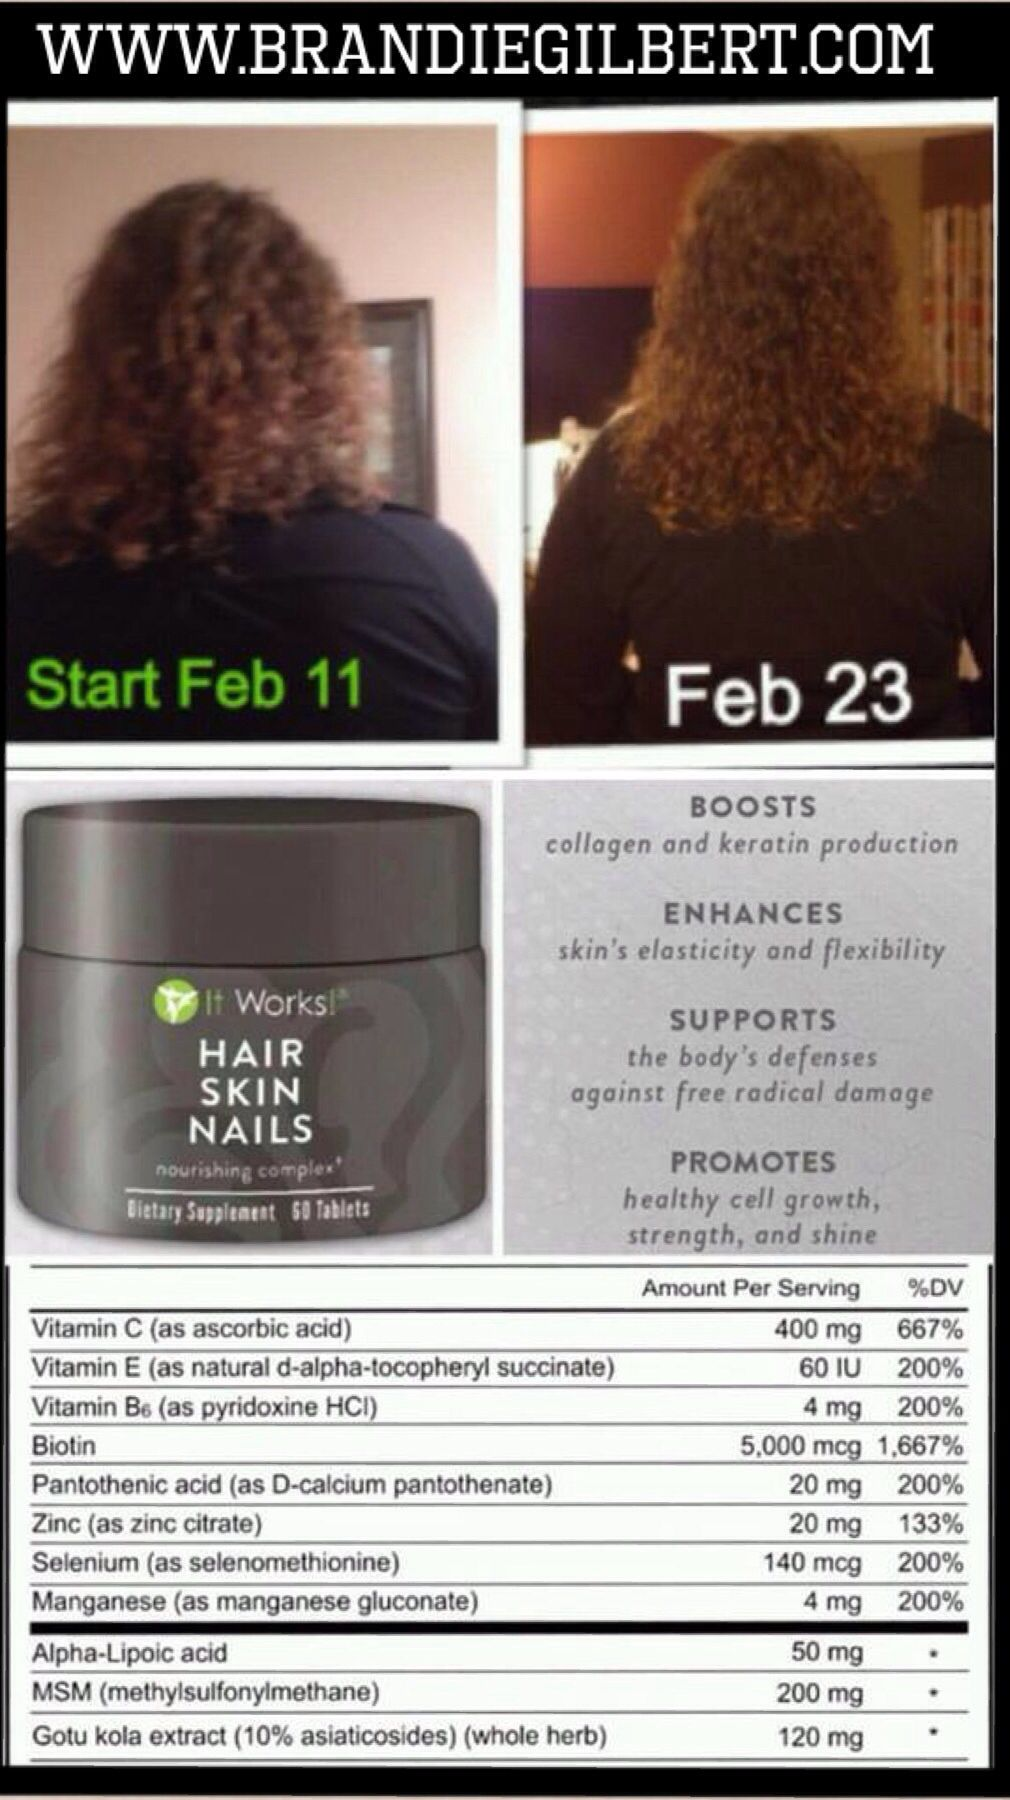 More amazing results from our Hair, Skin and Nails Supplement! This ...